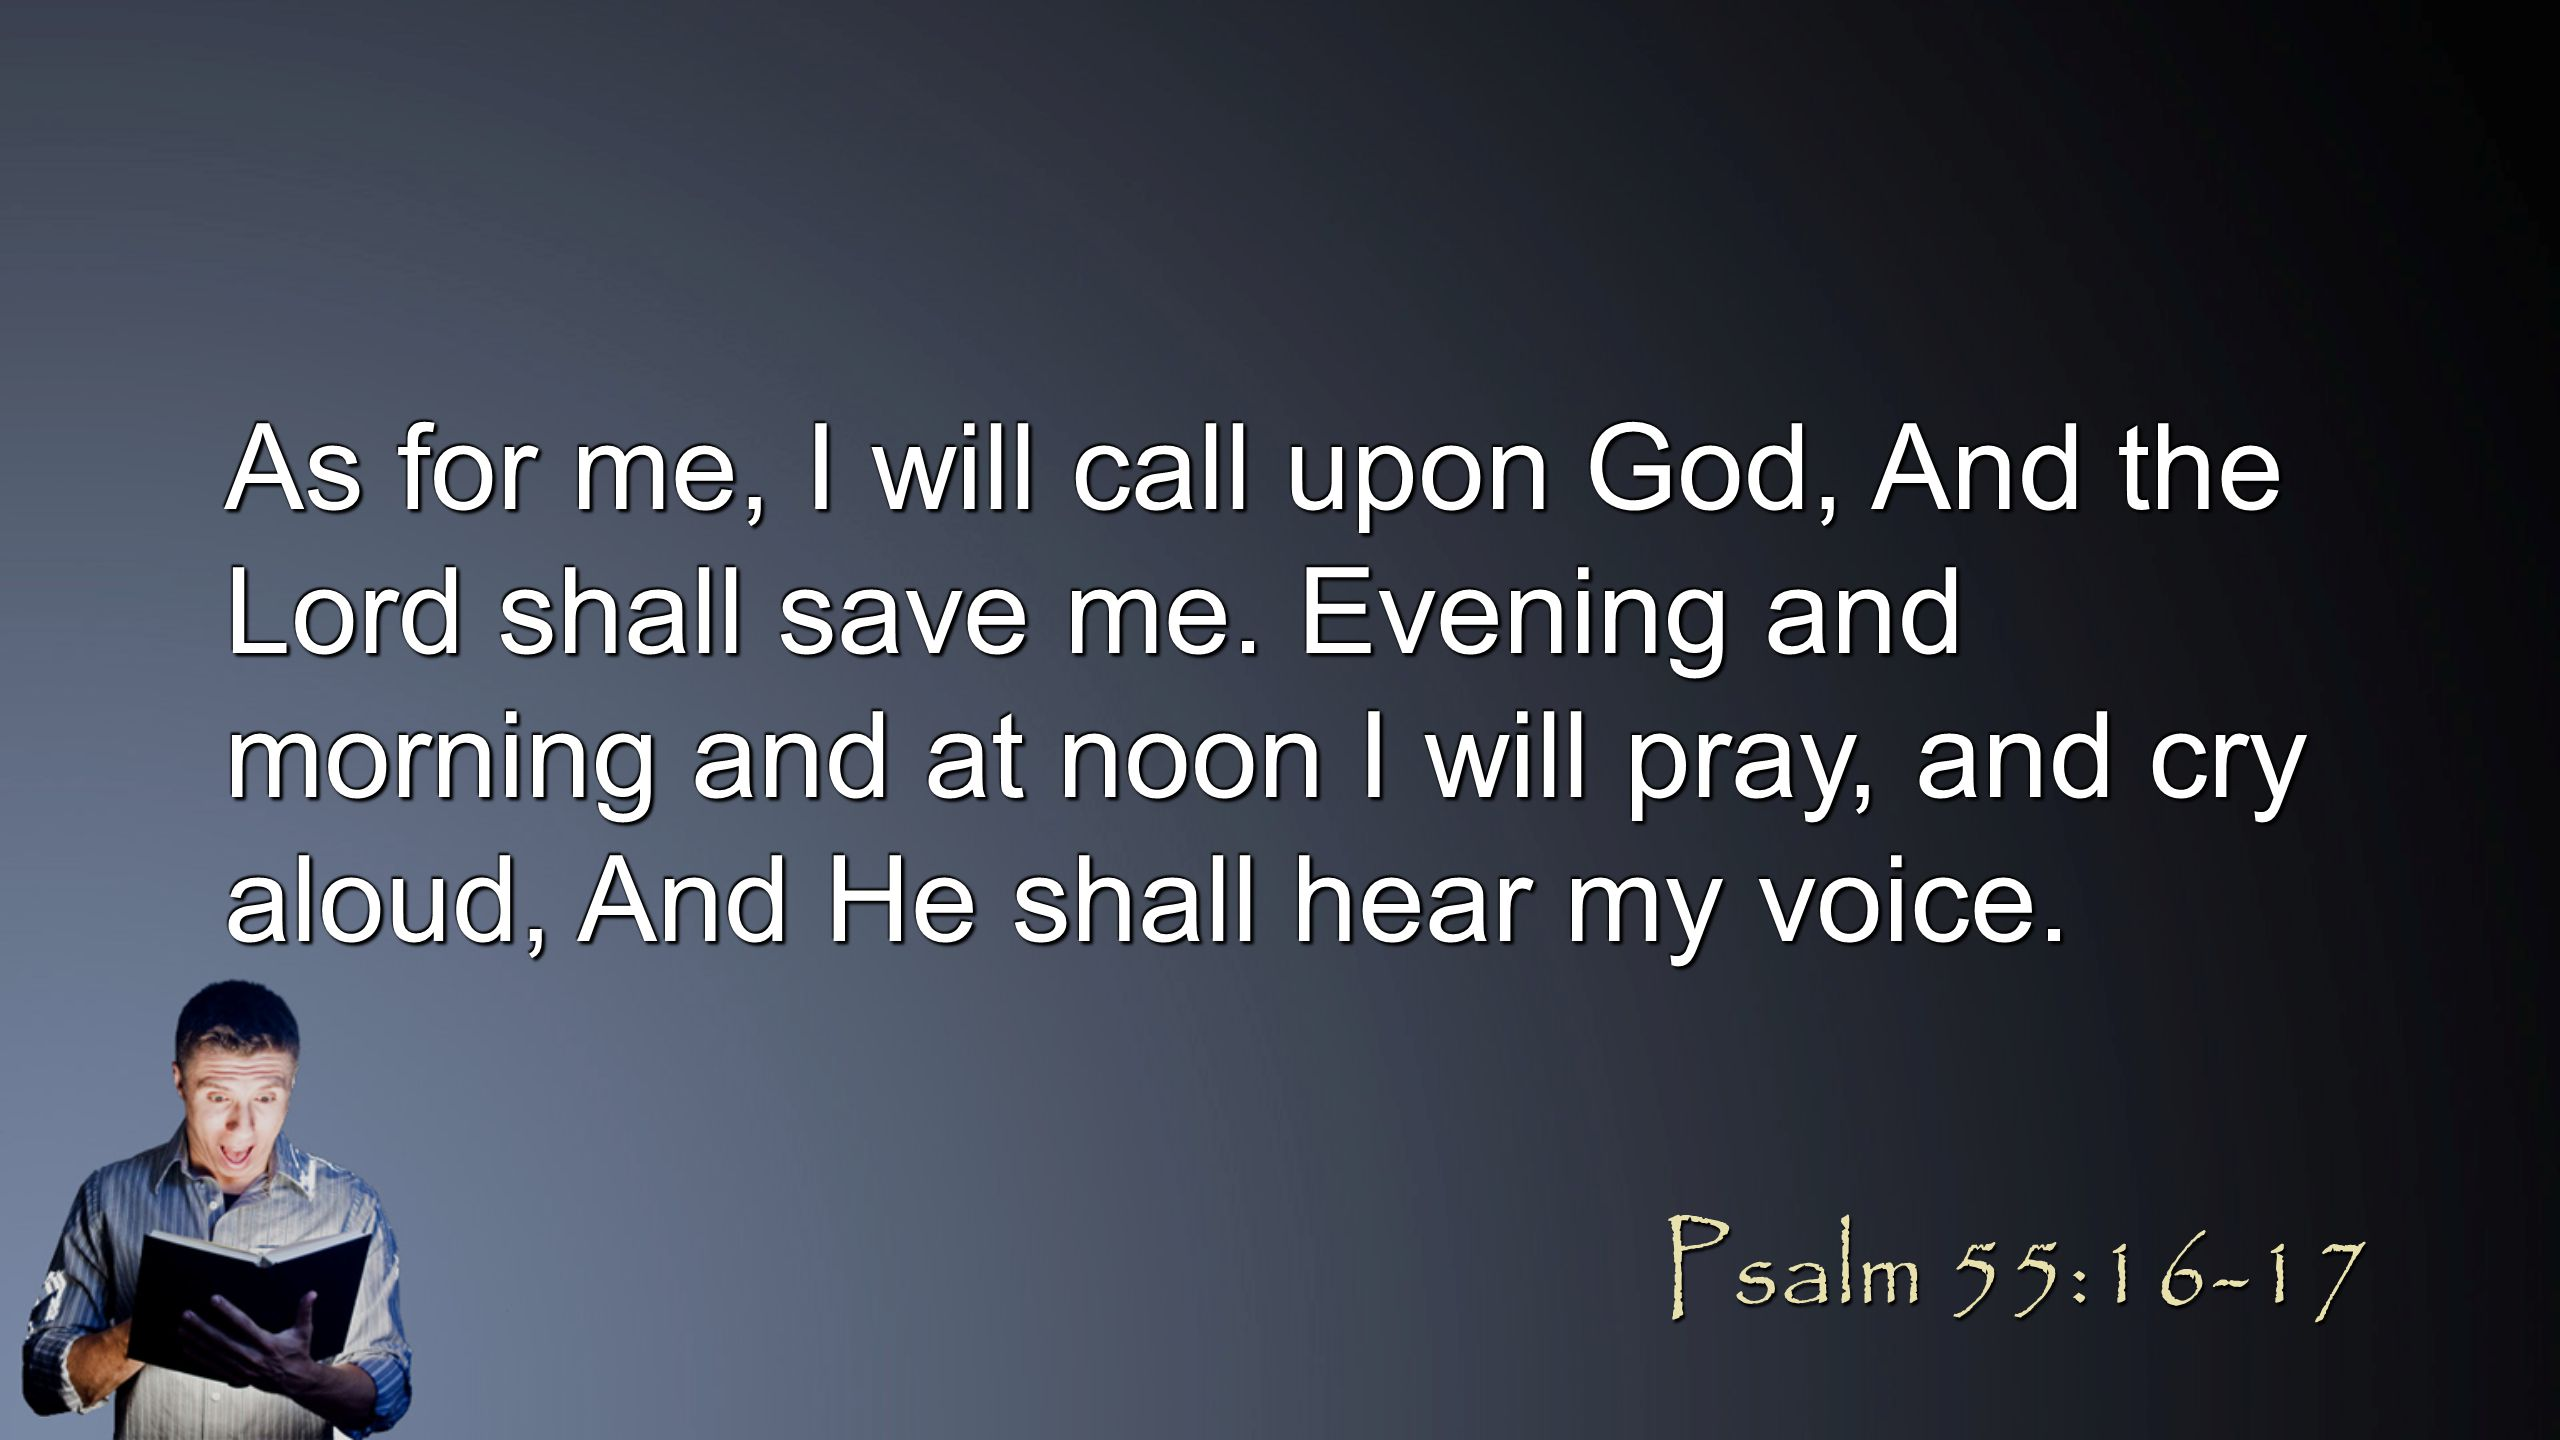 As for me, I will call upon God, And the Lord shall save me. Evening and morning and at noon I will pray, and cry aloud, And He shall hear my voice. P